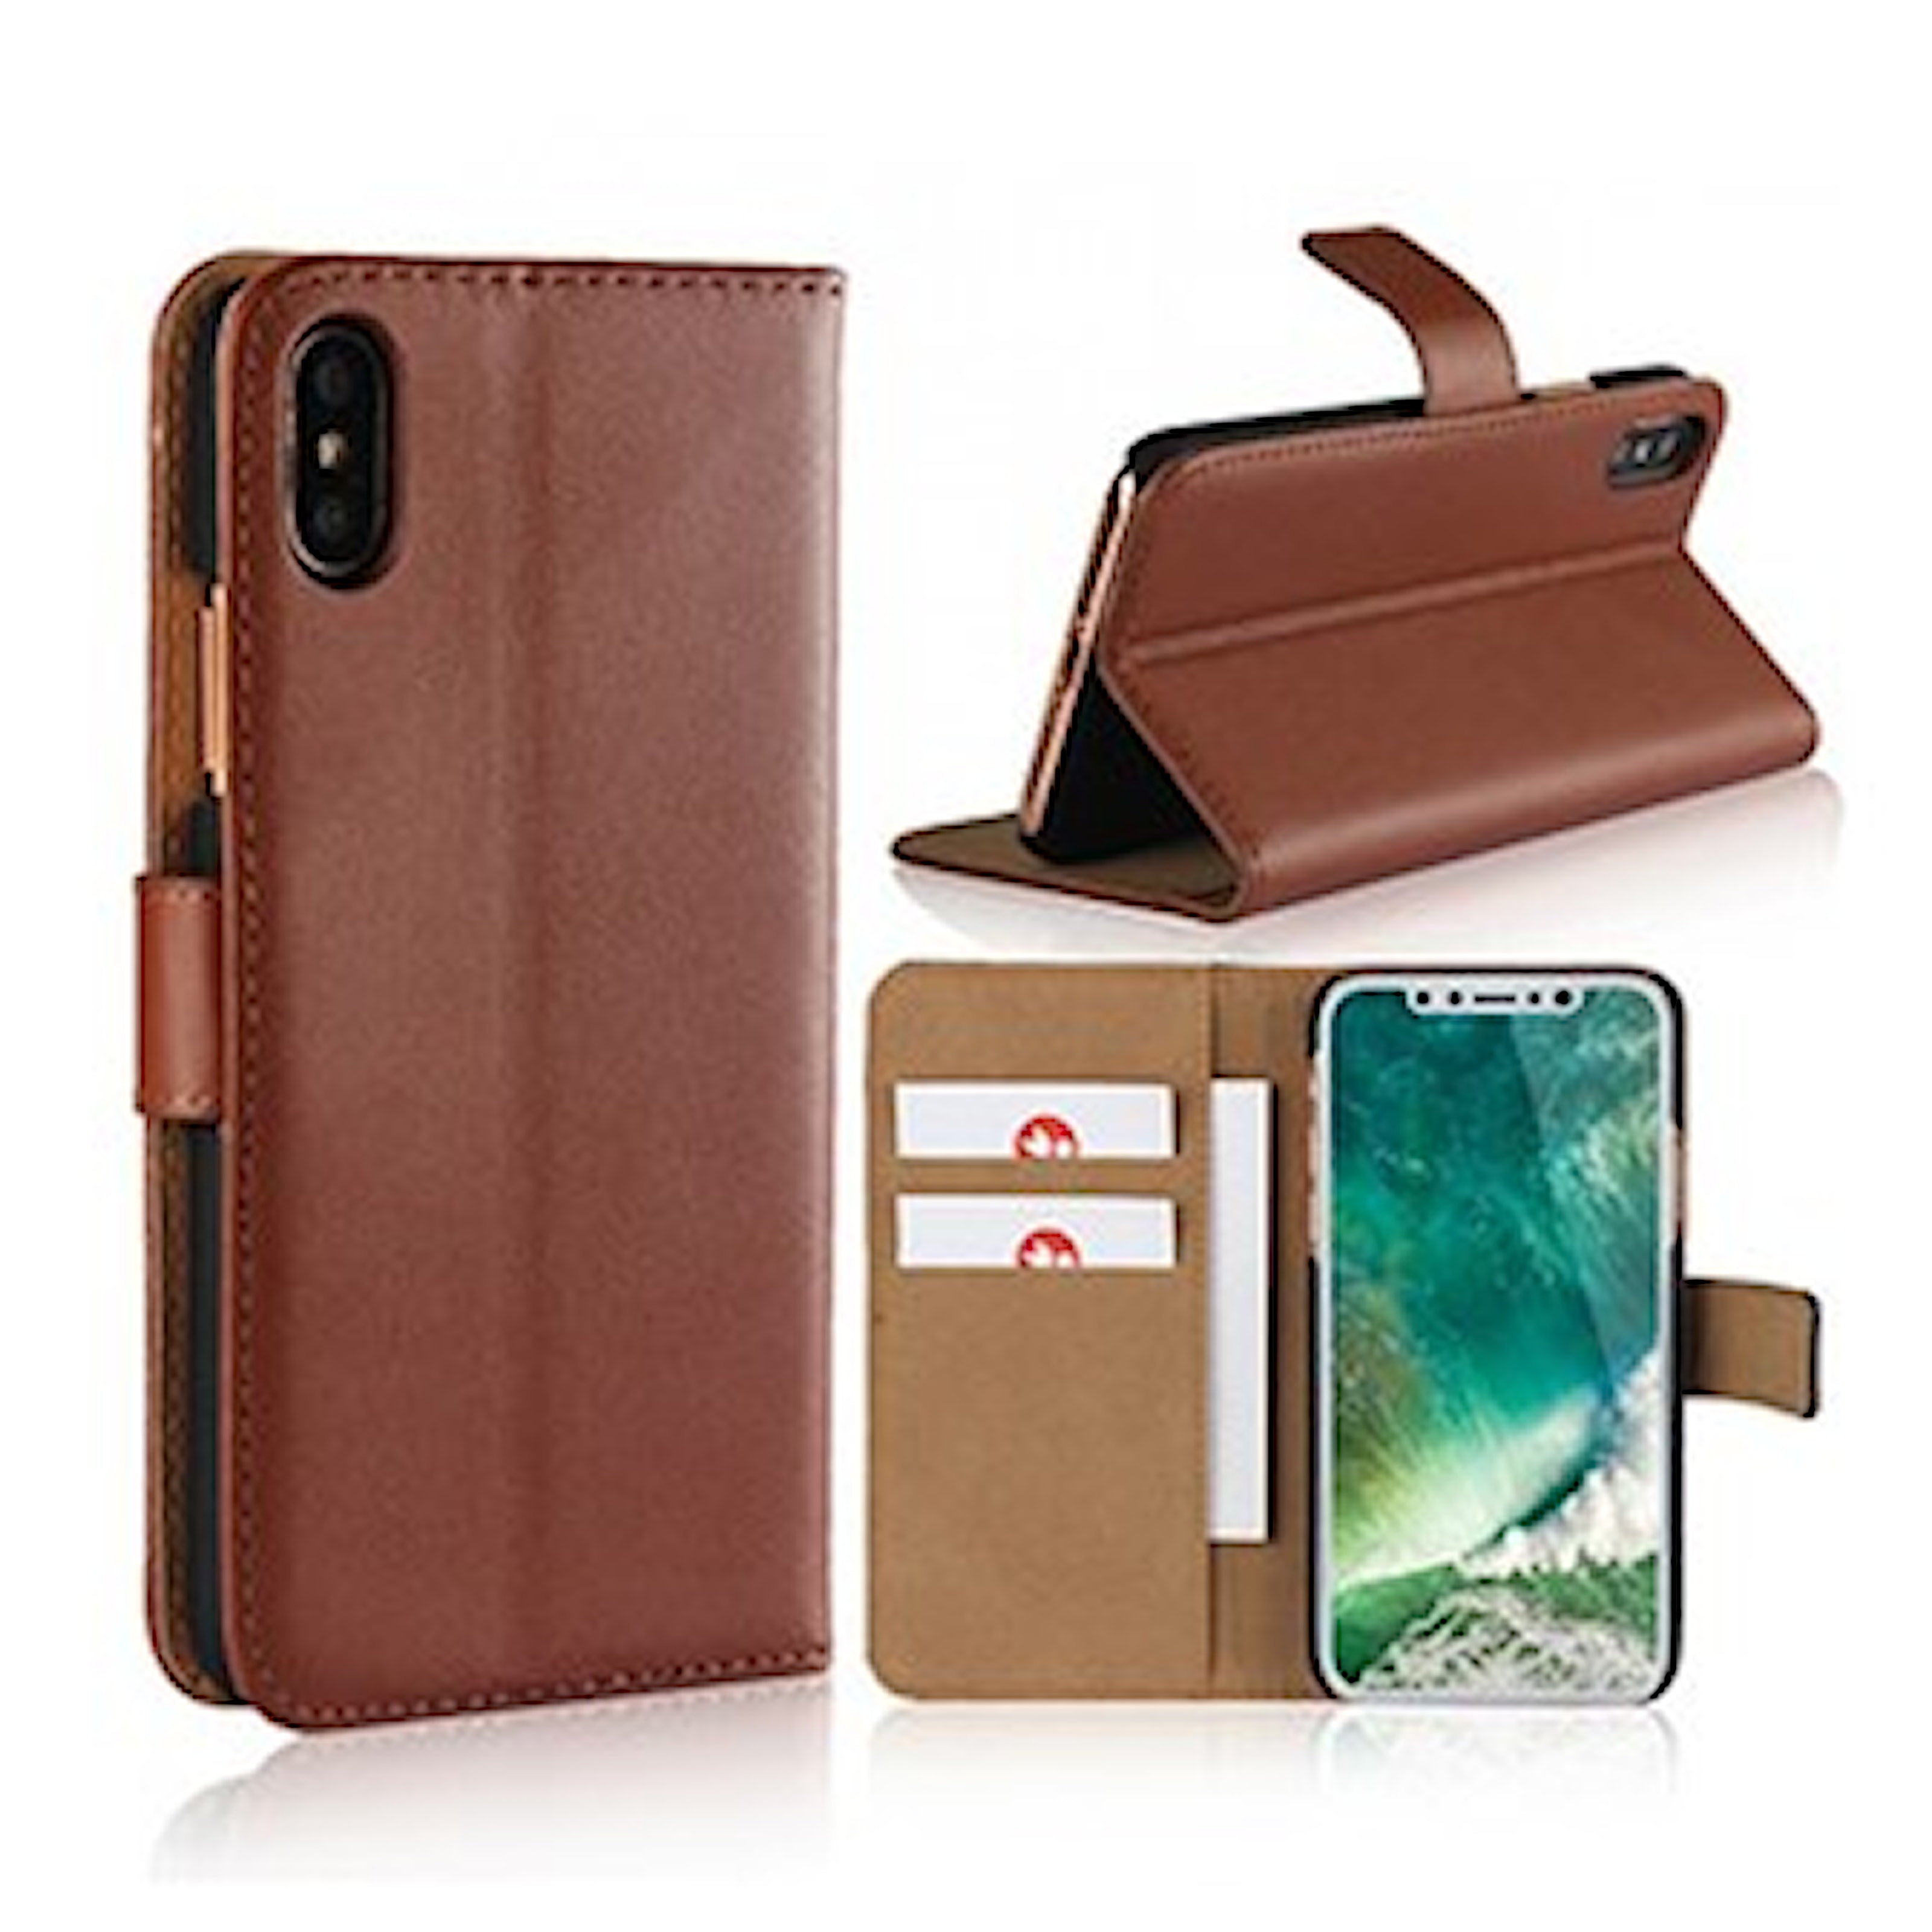 Brun, iPhone X/Xs, iPhone Wallet Cover, iPhone-lommebok, ,